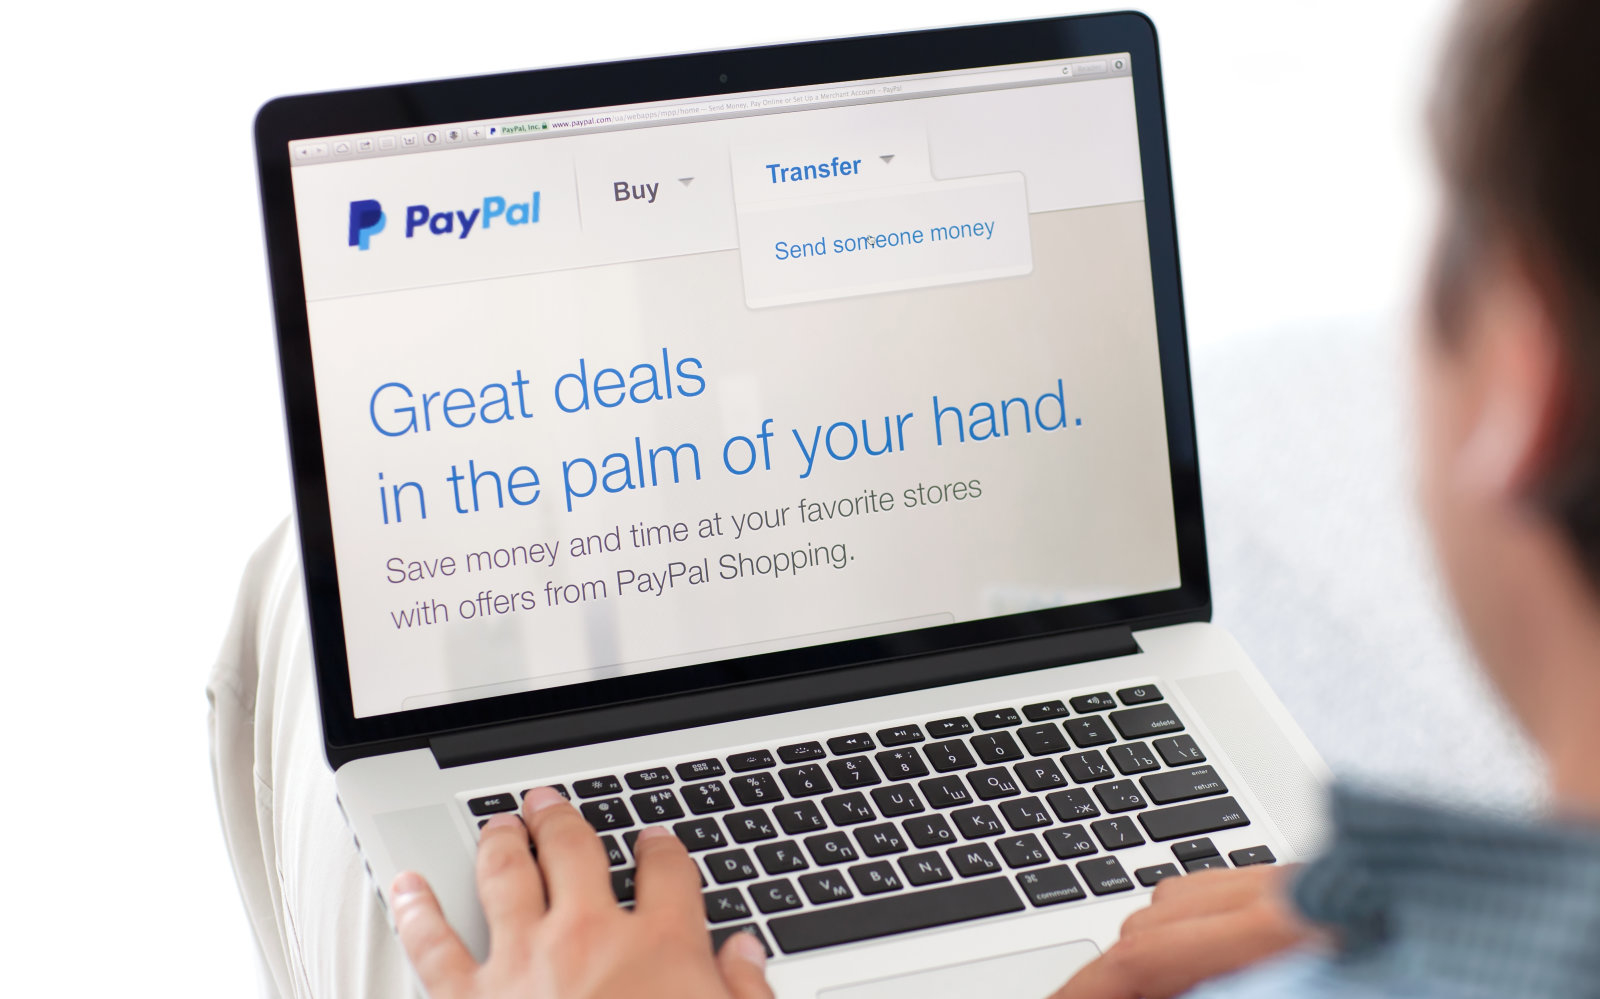 Simferopol, Russia - July 9, 2014: PayPal the largest operator of electronic money it was founded in 1998. PayPal is the most popular way of reception and sending the Internet of payments at the eBay auction.